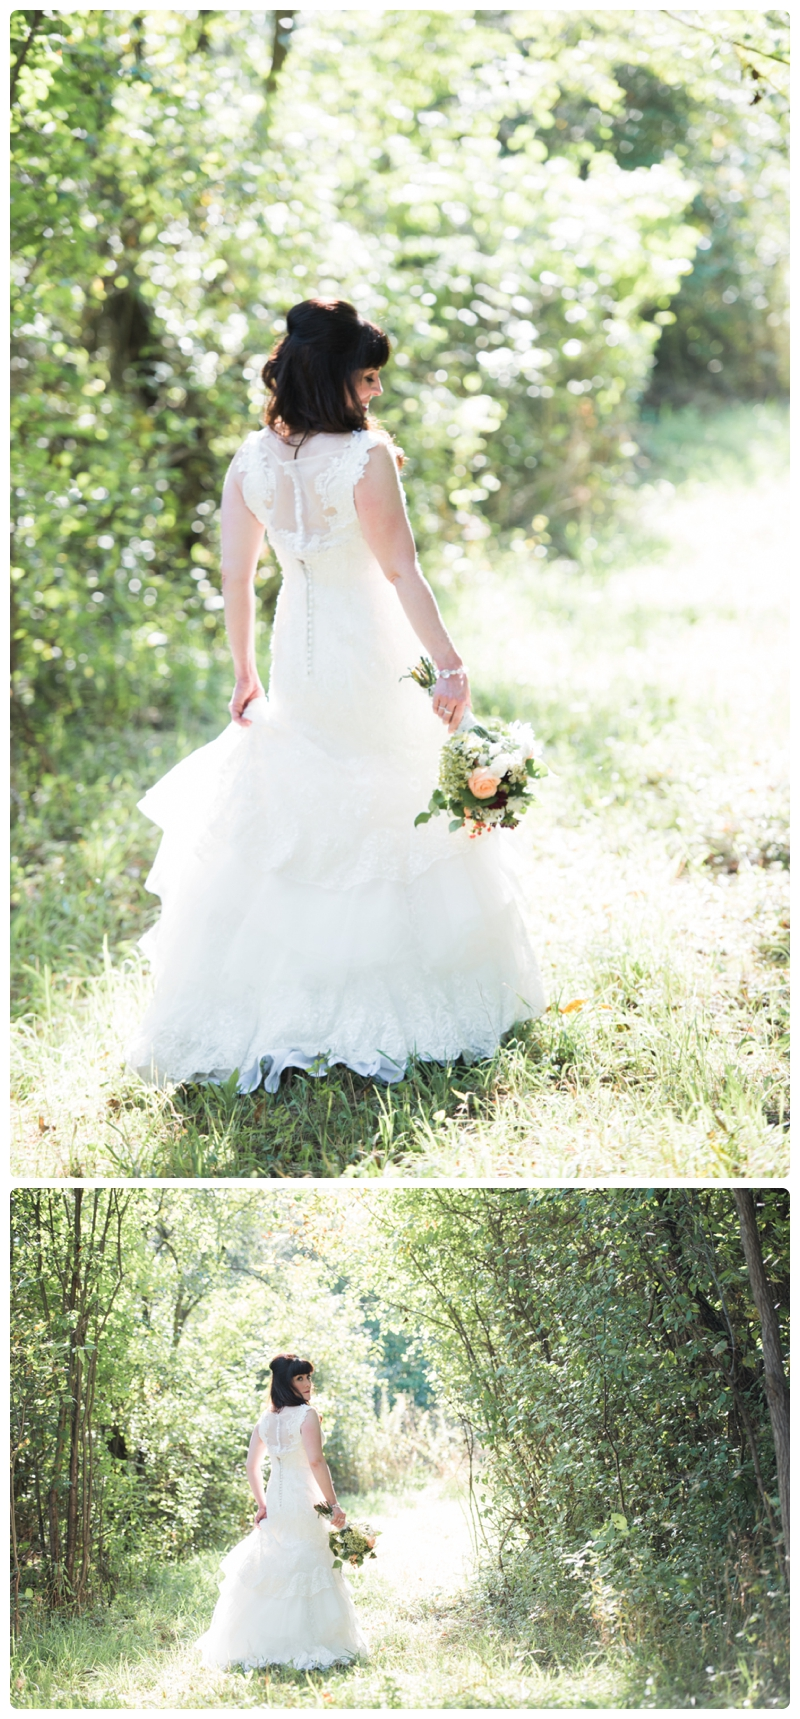 Backyard forest wedding in the Chicago suburbs by Rachael Foster Photography_0026.jpg